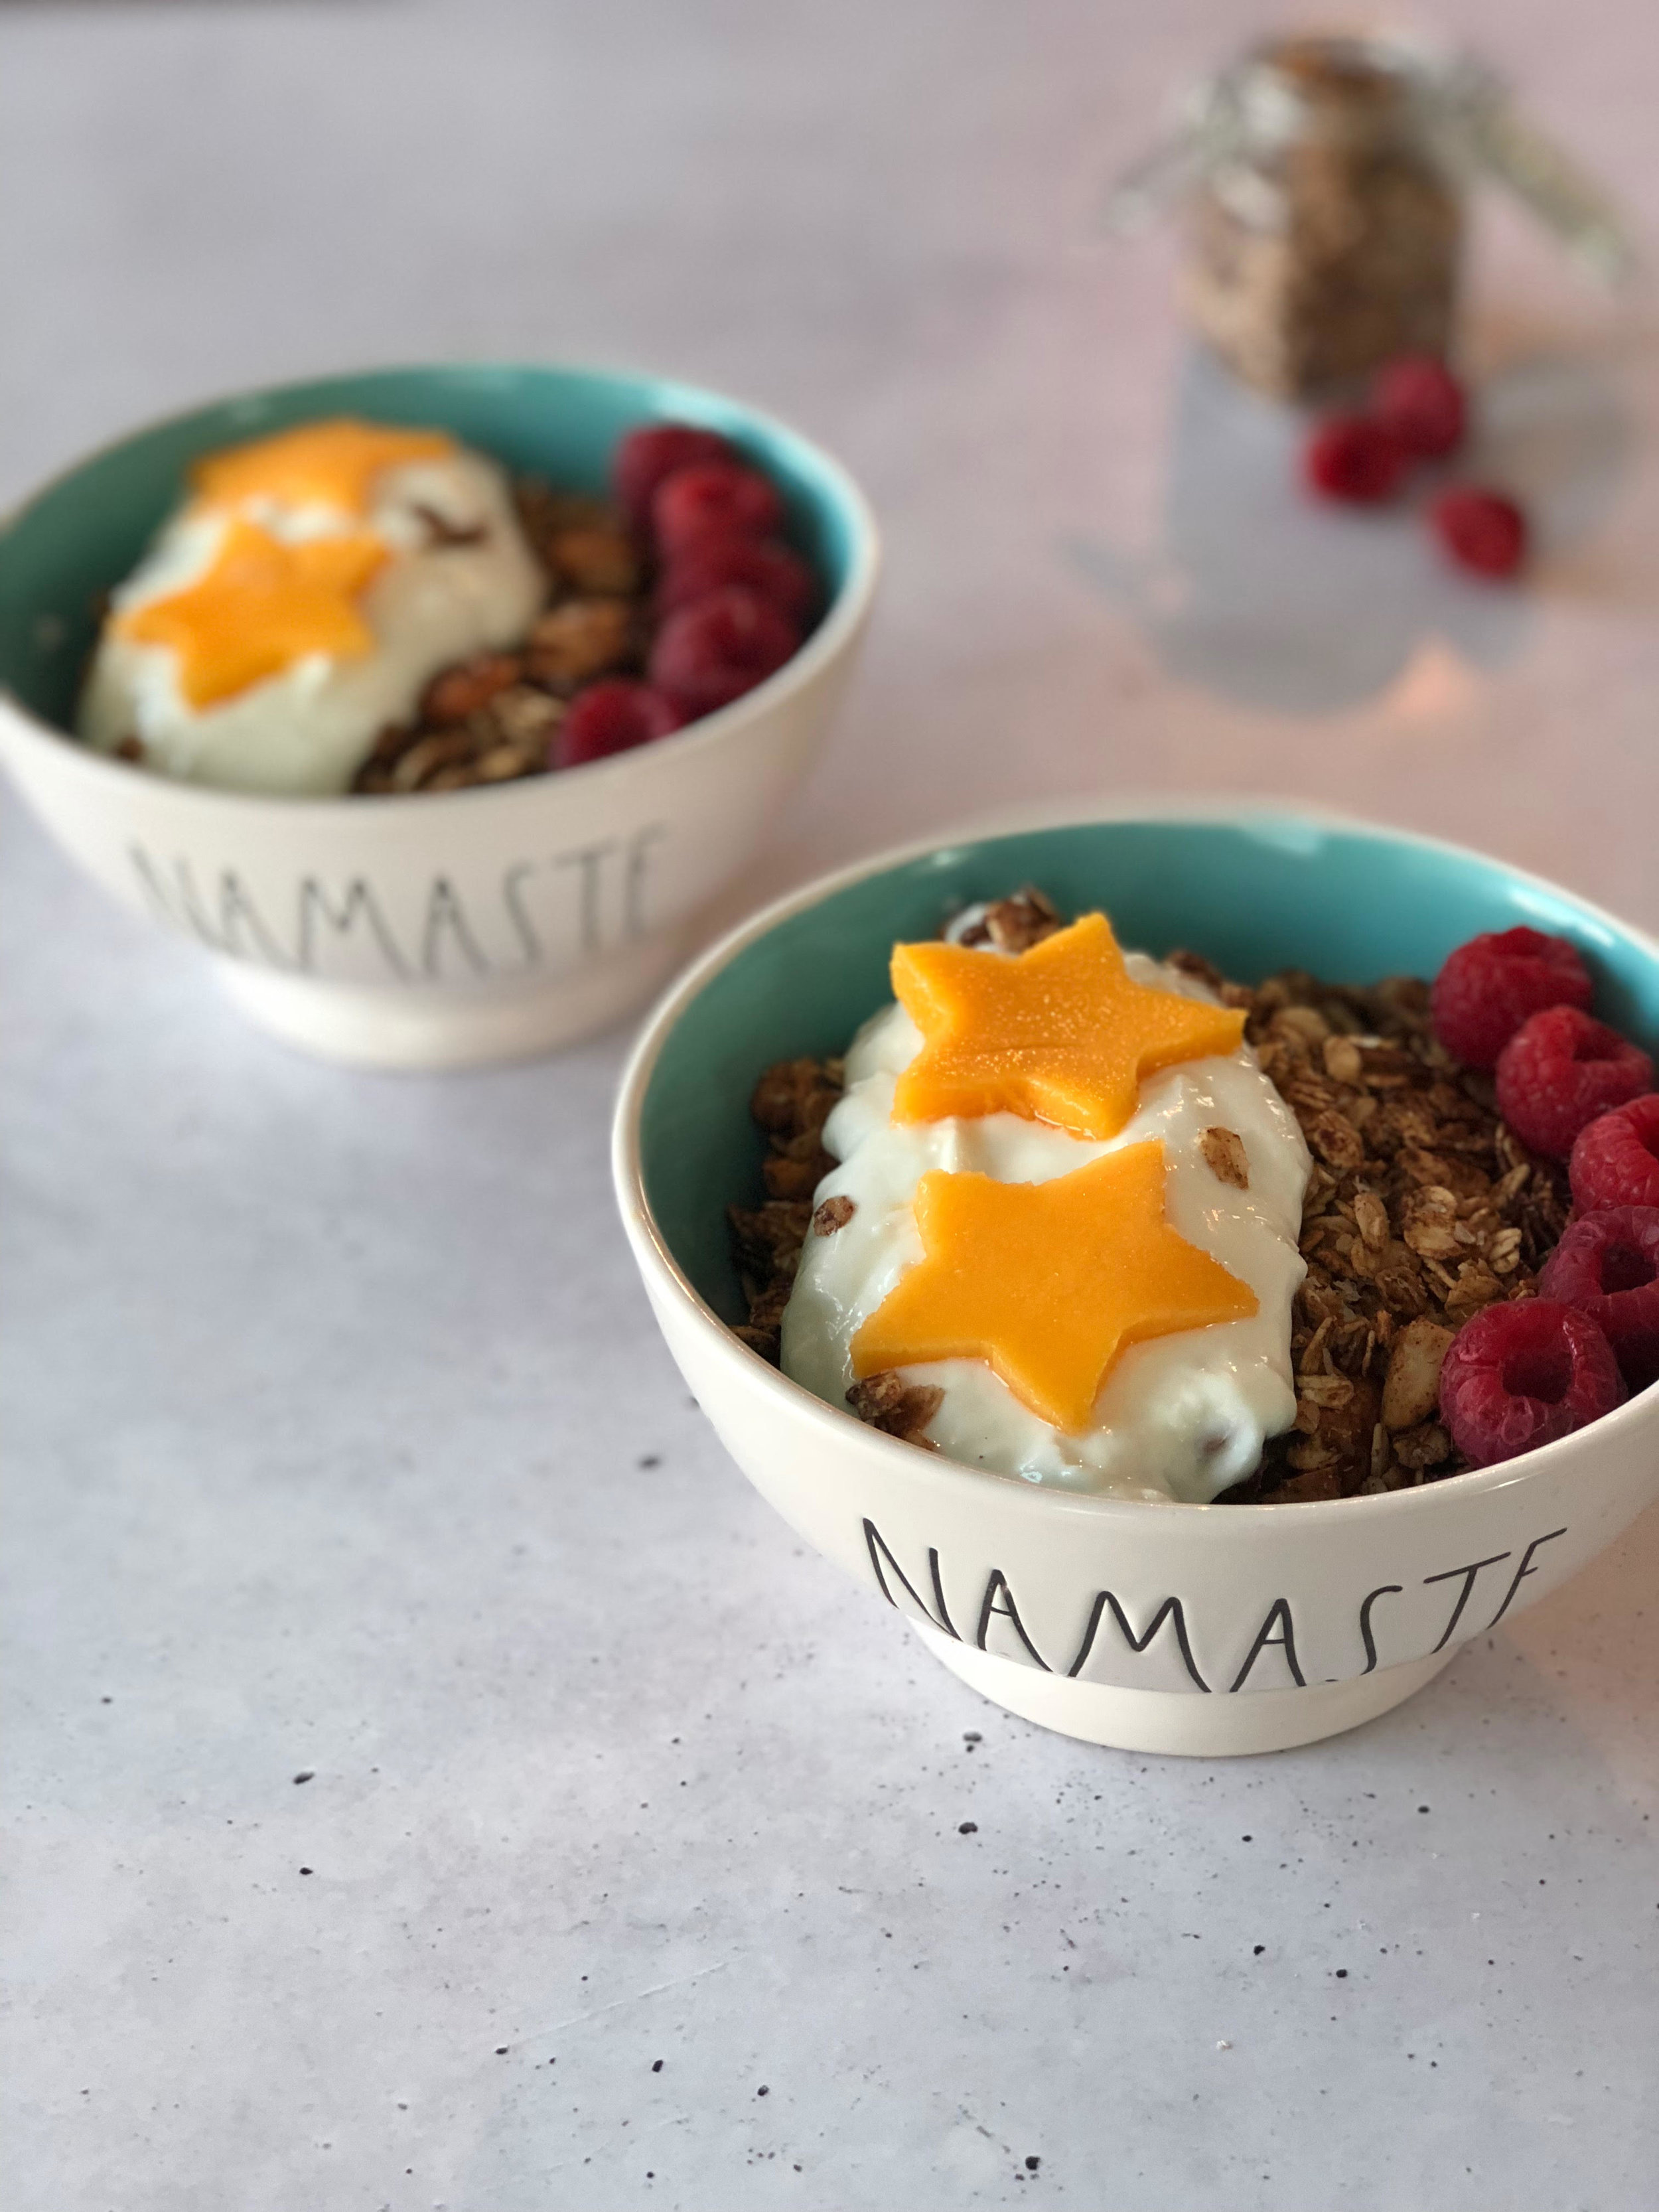 Granola bowl  - By Gemini BakesCombine 1/2 cup homemade granola, 4 tbsp. yogurt (coconut for ex.), any type of fruits and enjoy your breakfast!